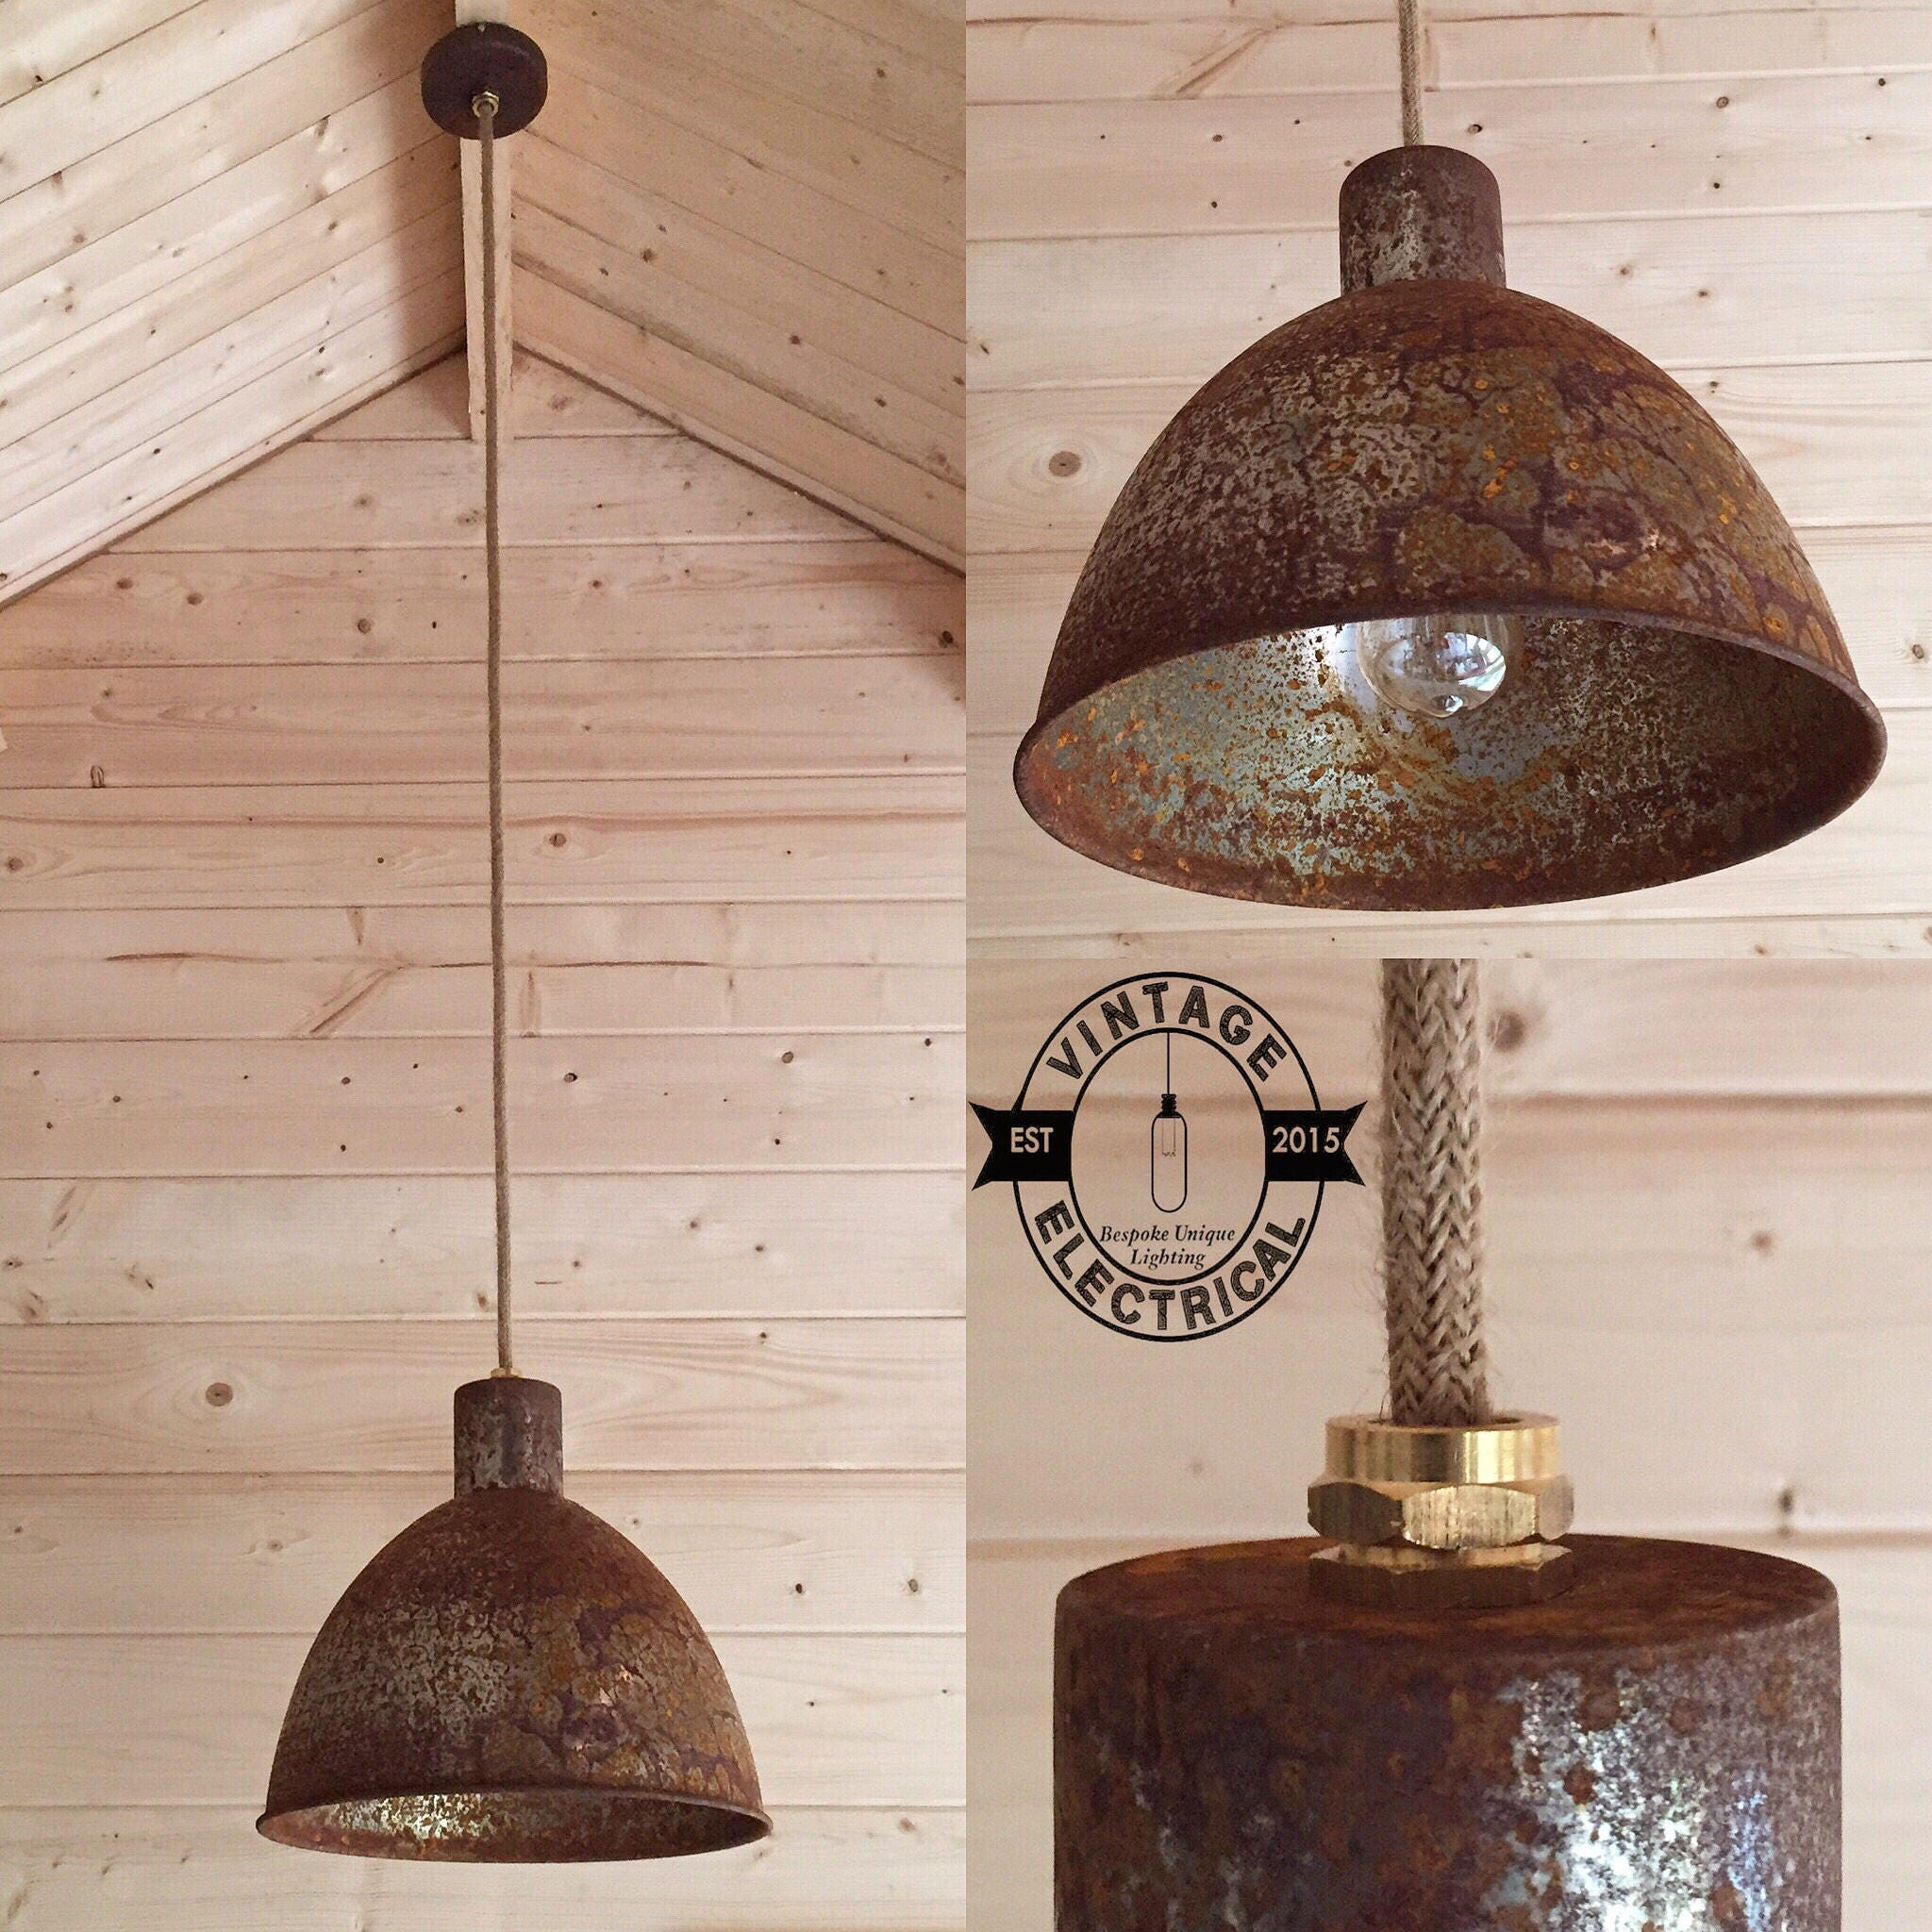 The warham rusted industrial factory steel shade light ceiling the warham rusted industrial factory steel shade light ceiling dinning room kitchen table vintage edison filament lamps pendant bar mozeypictures Gallery